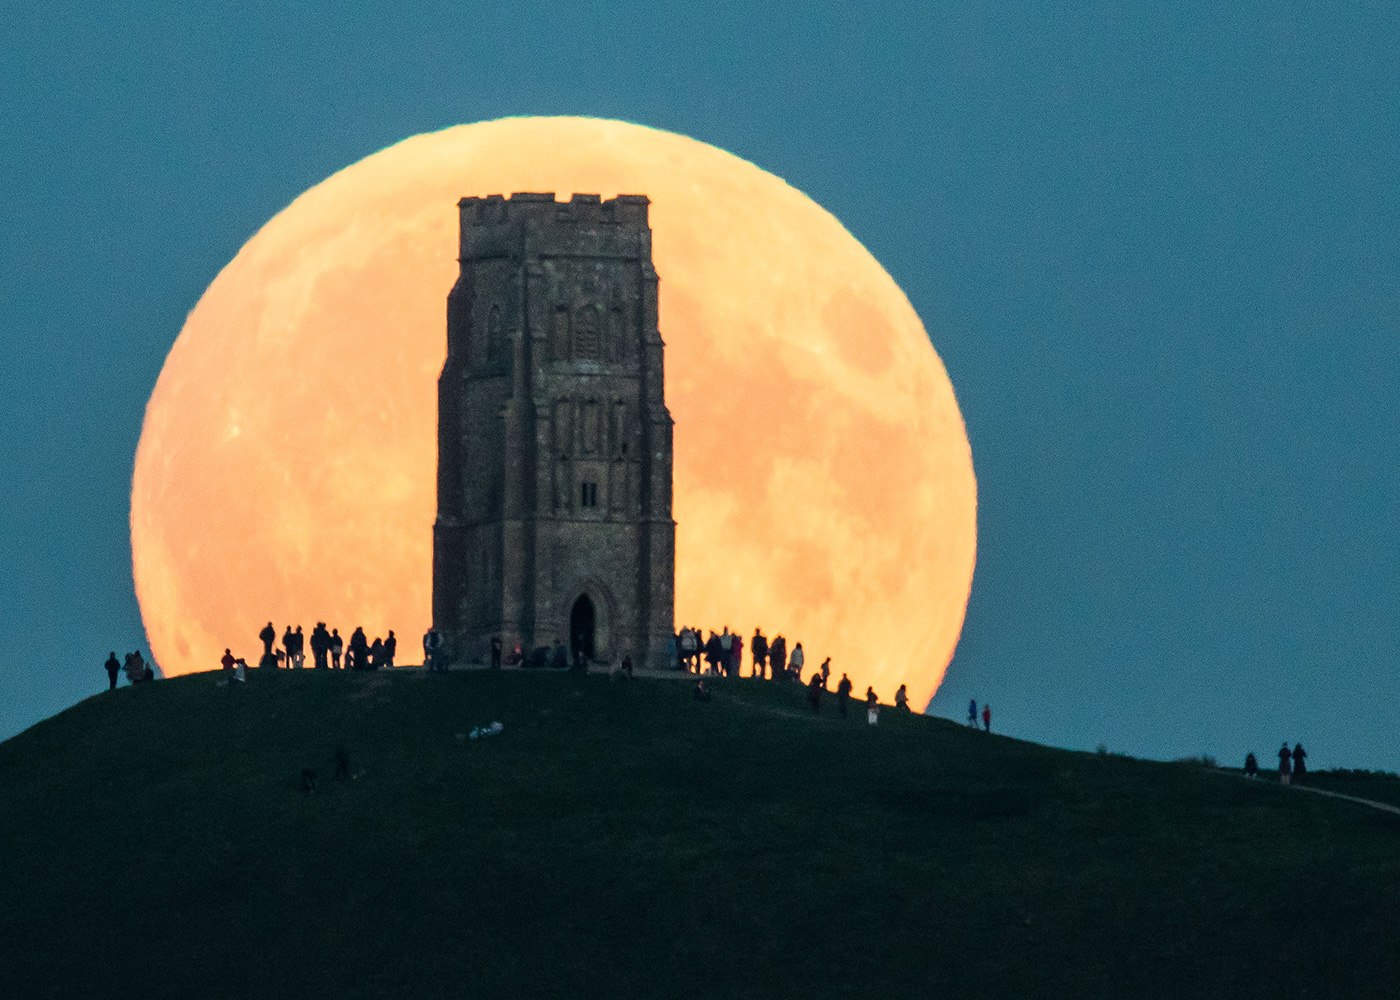 blood moon july 2018 england - photo #23